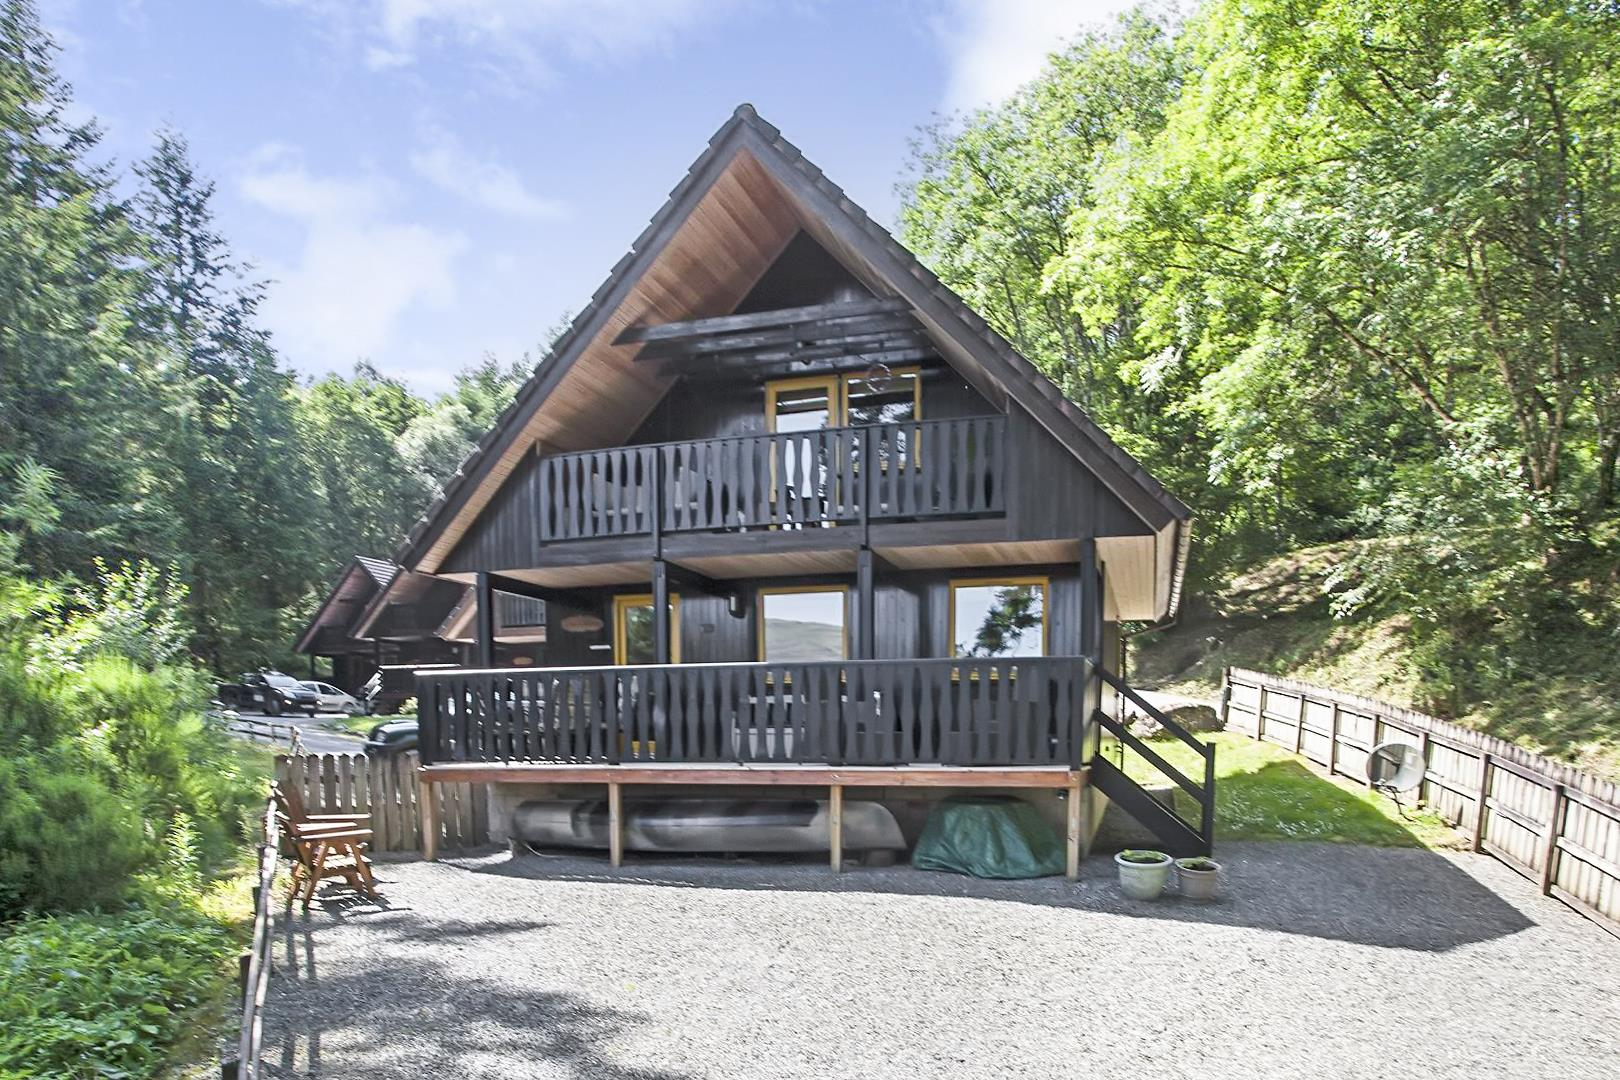 The Viking, Loch Tay Highland Lodges, Killin, Perthshire, FK21 8TY, UK